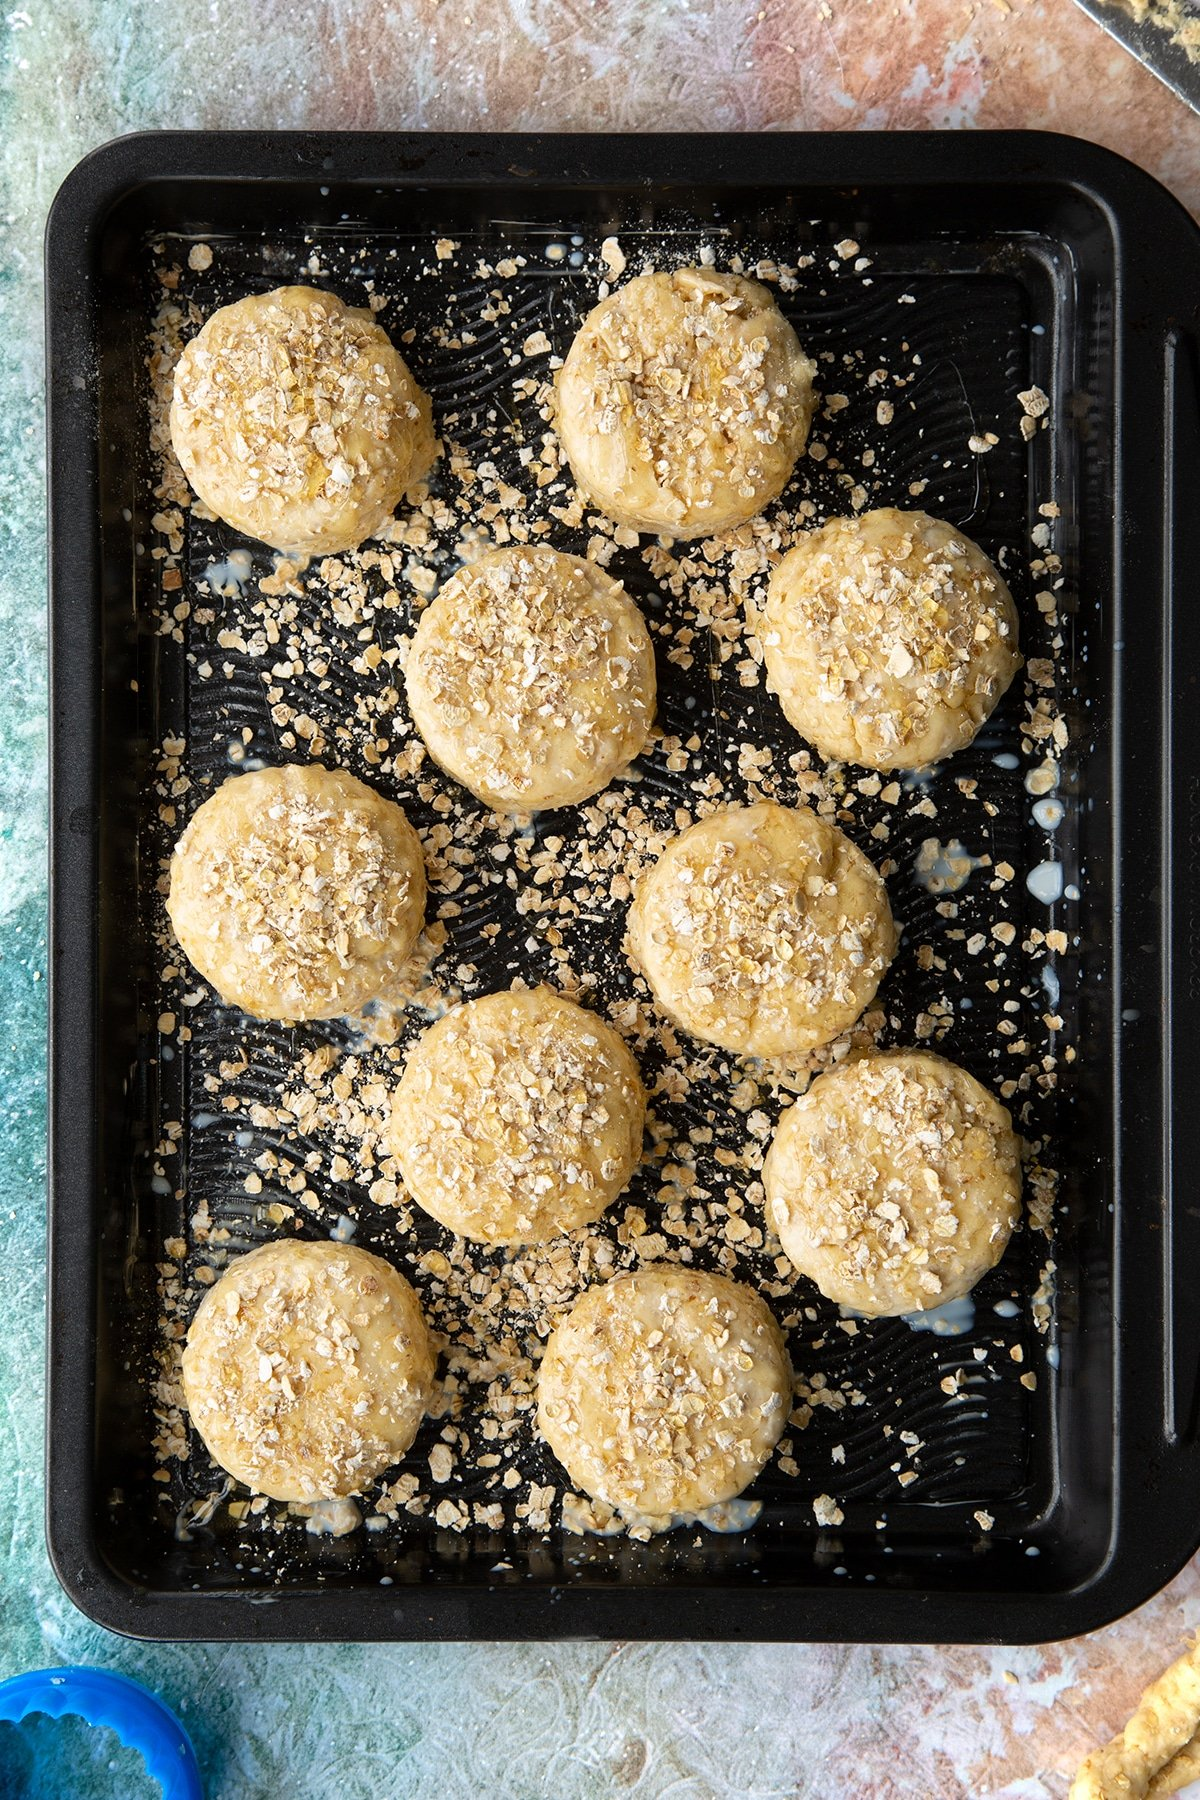 Oatmeal scone rounds of dough, brushed with milk, scattered with oats and drizzled with honey on a baking tray.